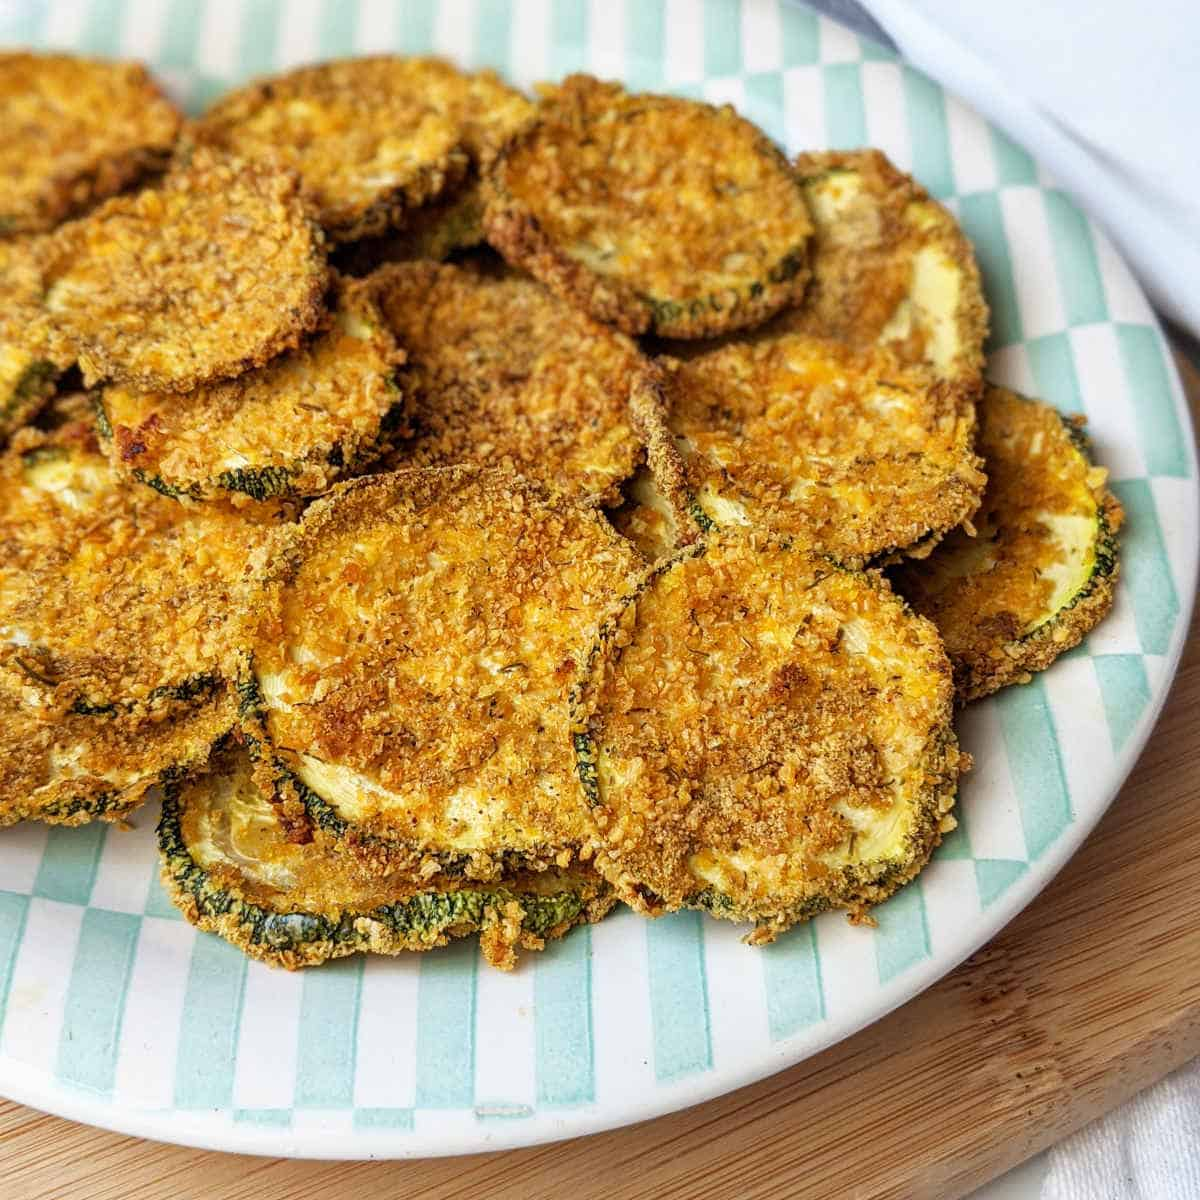 Zucchini chips on a plate.